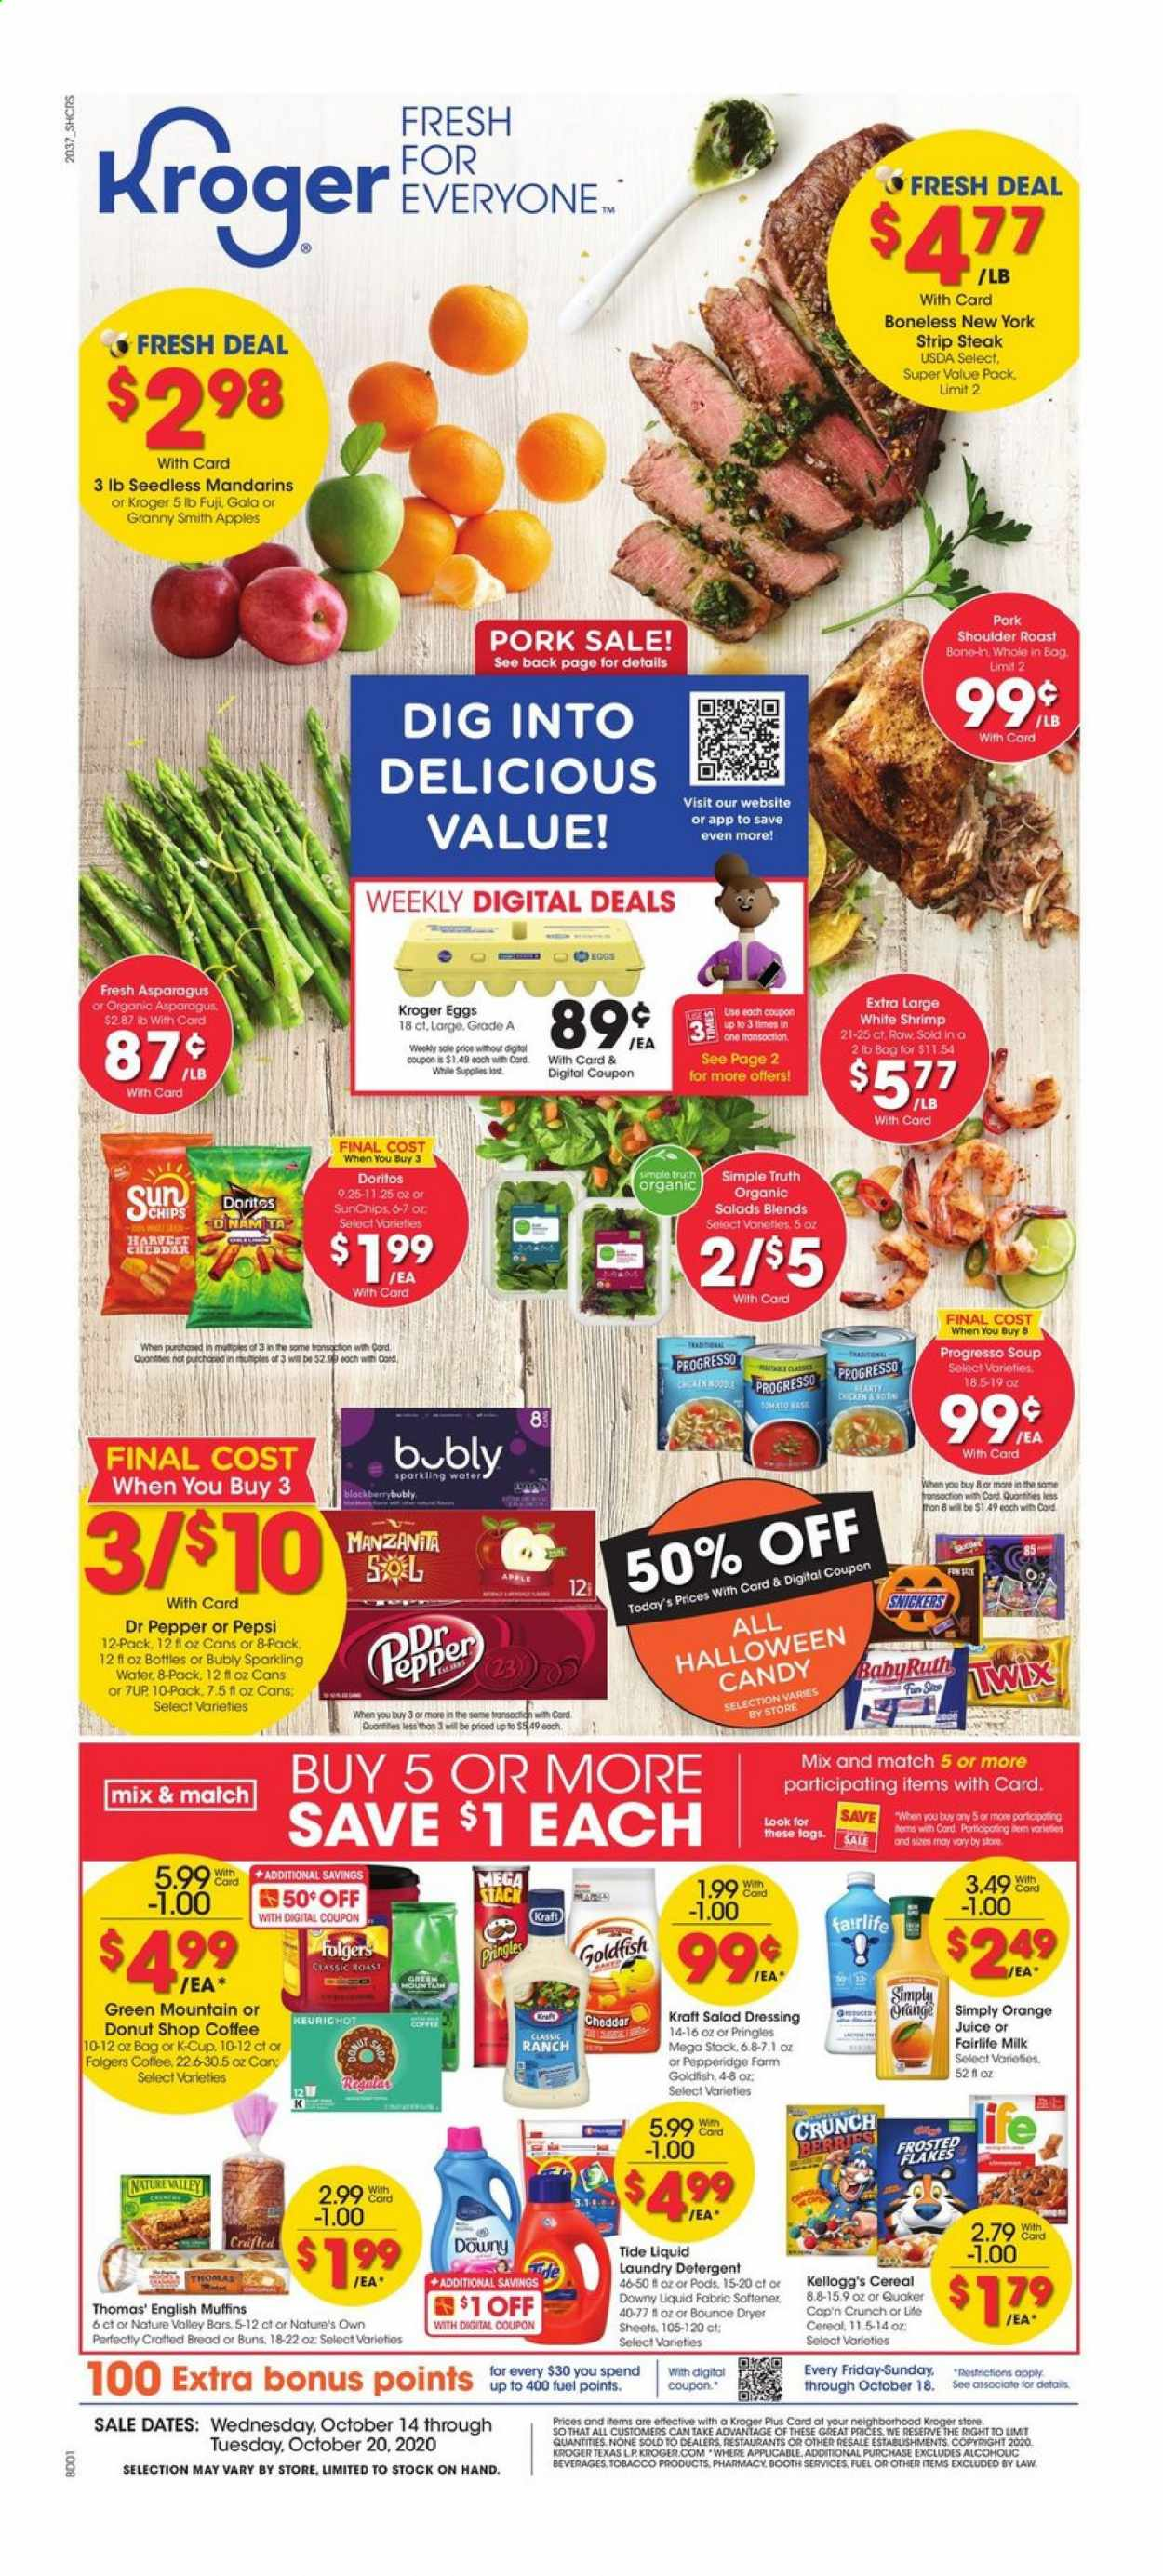 Kroger Flyer - 10.14.2020 - 10.20.2020 - Sales products - apples, asparagus, bounce, bread, cereals, coffee, cup, dates, detergent, doritos, downy, dryer, eggs, english muffins, fuel, milk, muffins, salad dressing, shrimp, sole, tide, pork meat, pringles, cheddar, chicken, pepsi, orange, organic, chips, steak, juice, candy, dressing, soup, pepper, sparkling water, softener, cereal, salad, flakes, snickers, liquid, laundry detergent, roast, folgers, apple, shrimps, donut, craft. Page 1.